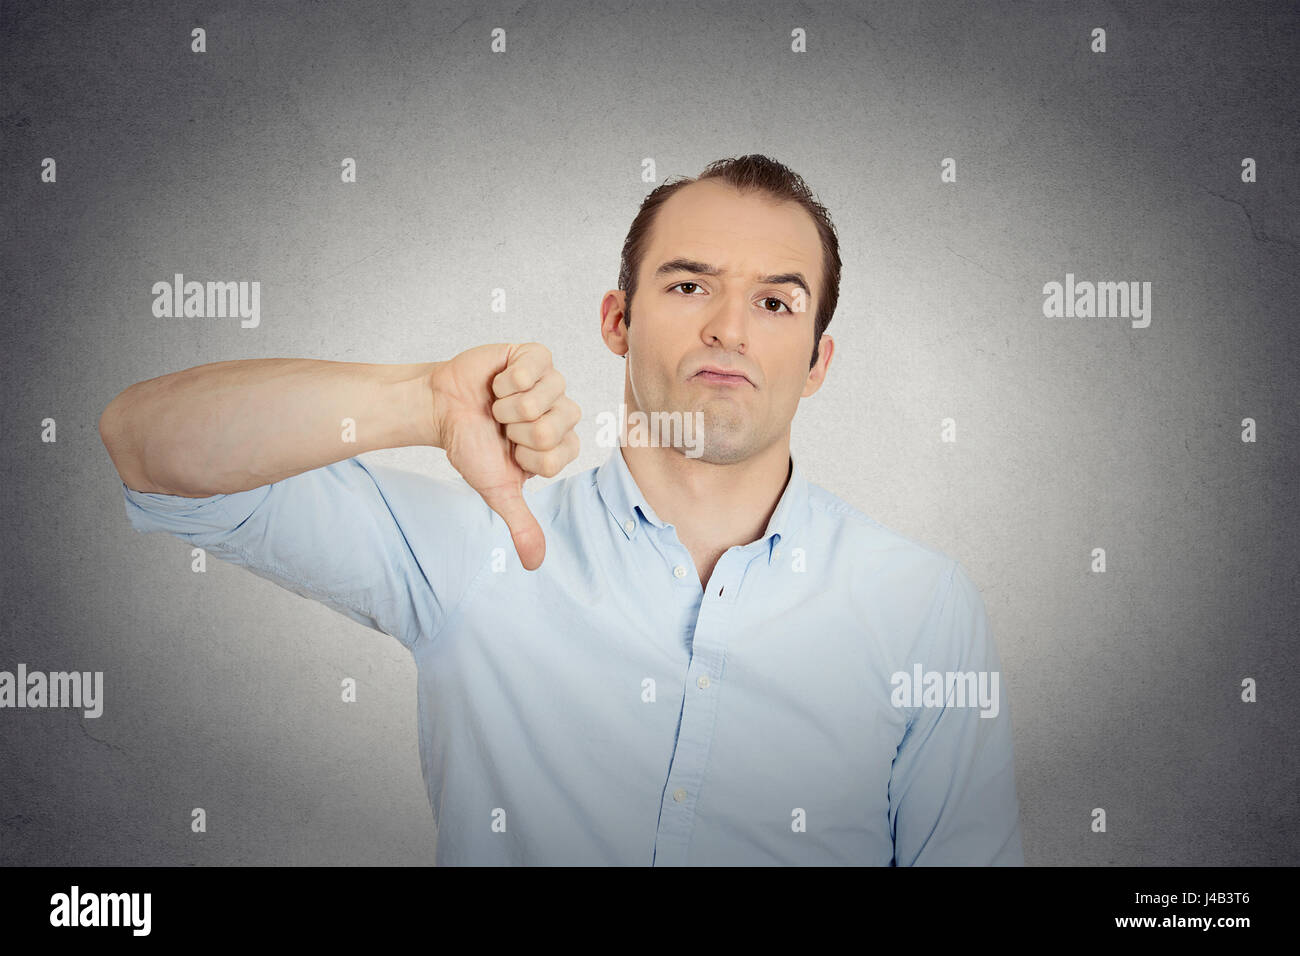 Closeup portrait of angry, unhappy, young handsome man showing thumbs down sign, in disapproval of offer, situation - Stock Image